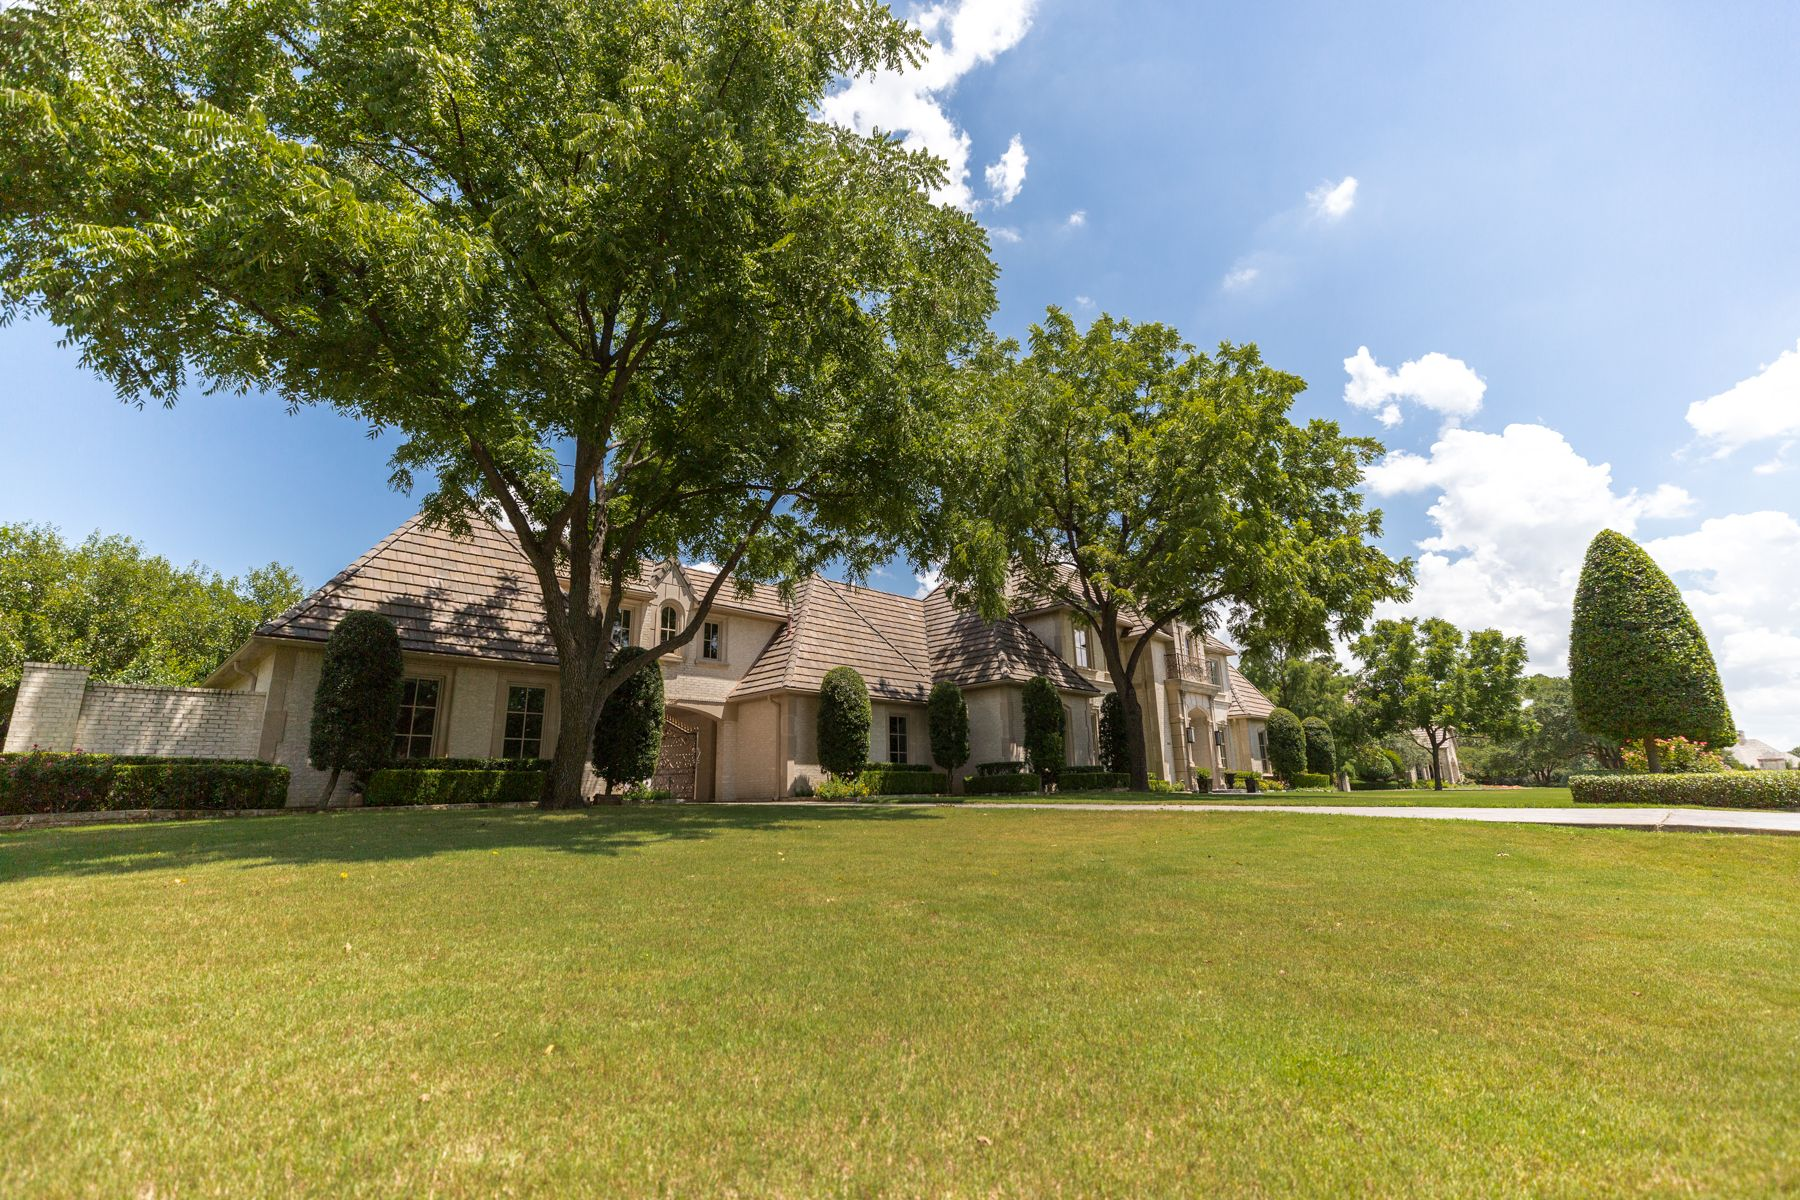 Top Dressing a Lawn: How to Do It & Why It's Important in North Texas